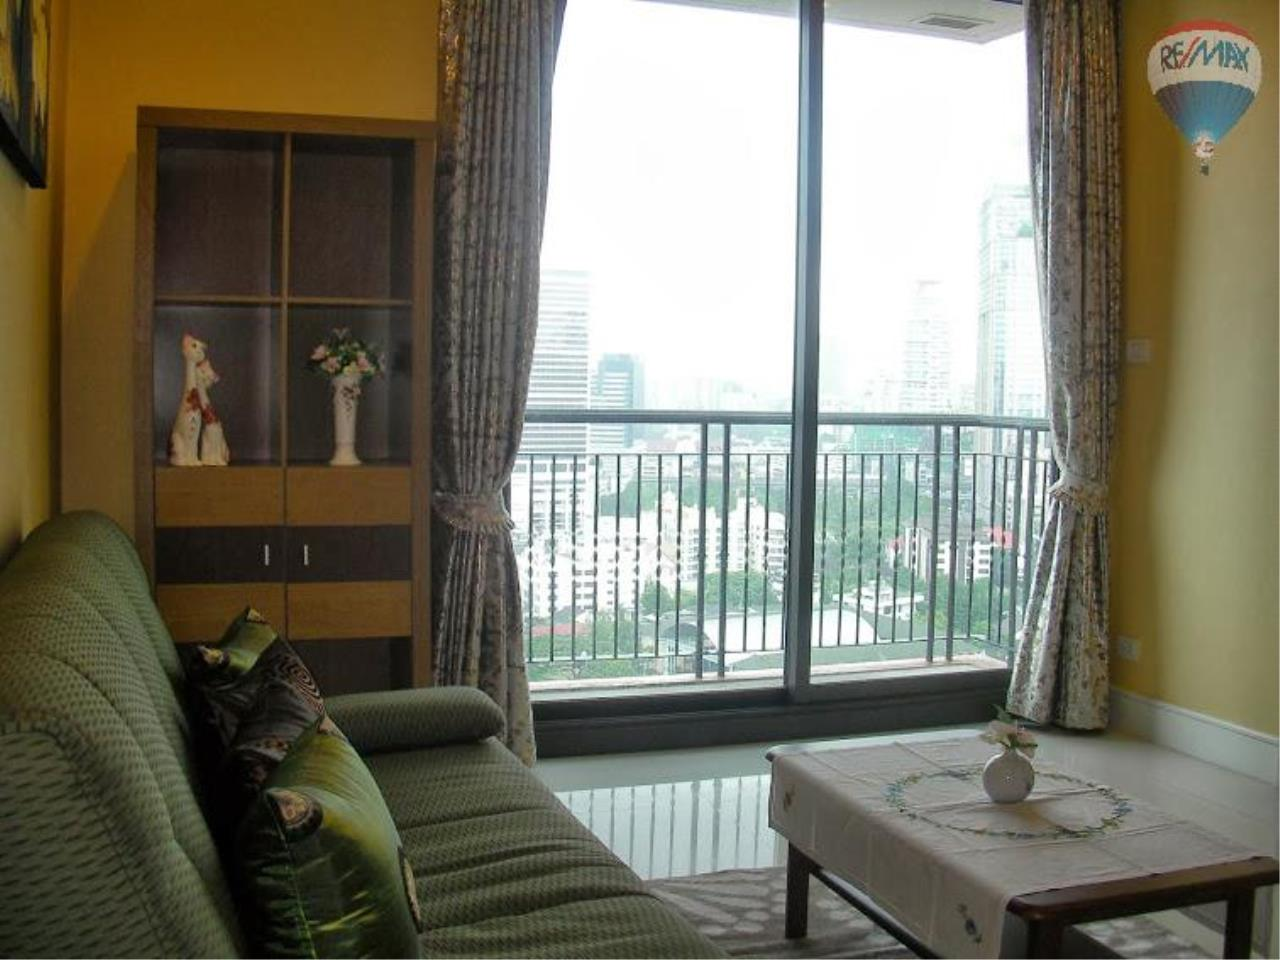 RE/MAX Properties Agency's 1 Bedroom for Sale at Sukhumvit 22 6